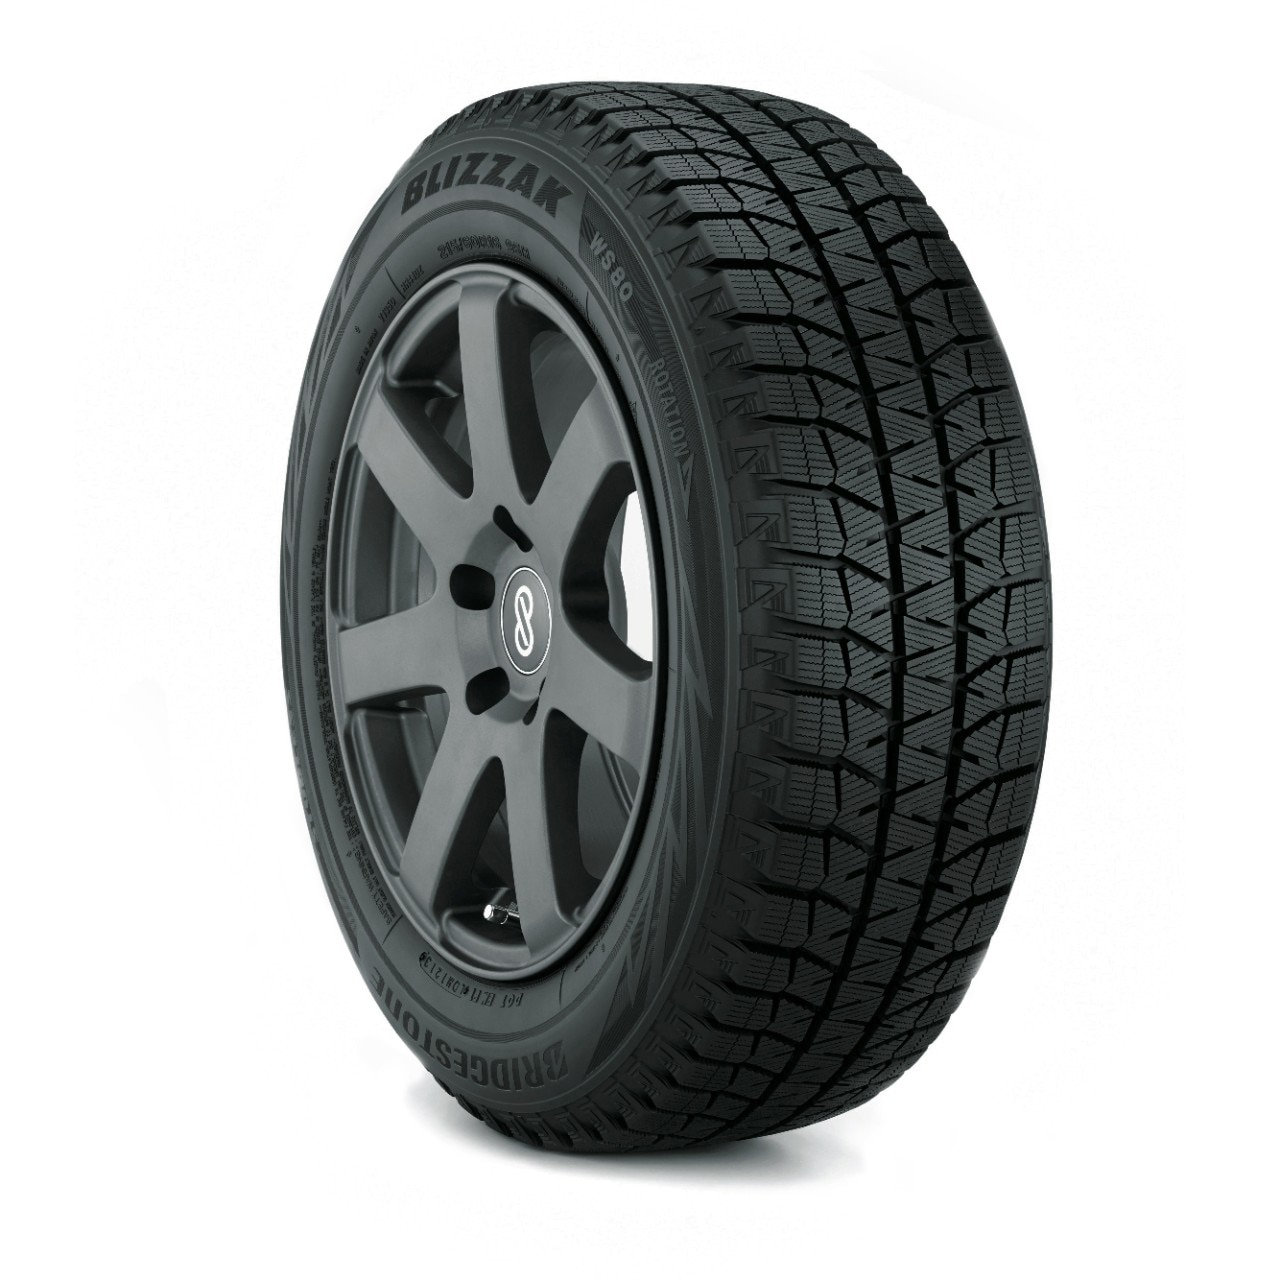 225 45R17 Tires >> Blizzak WS80 | Tires for Driving Confidently in Winter ...